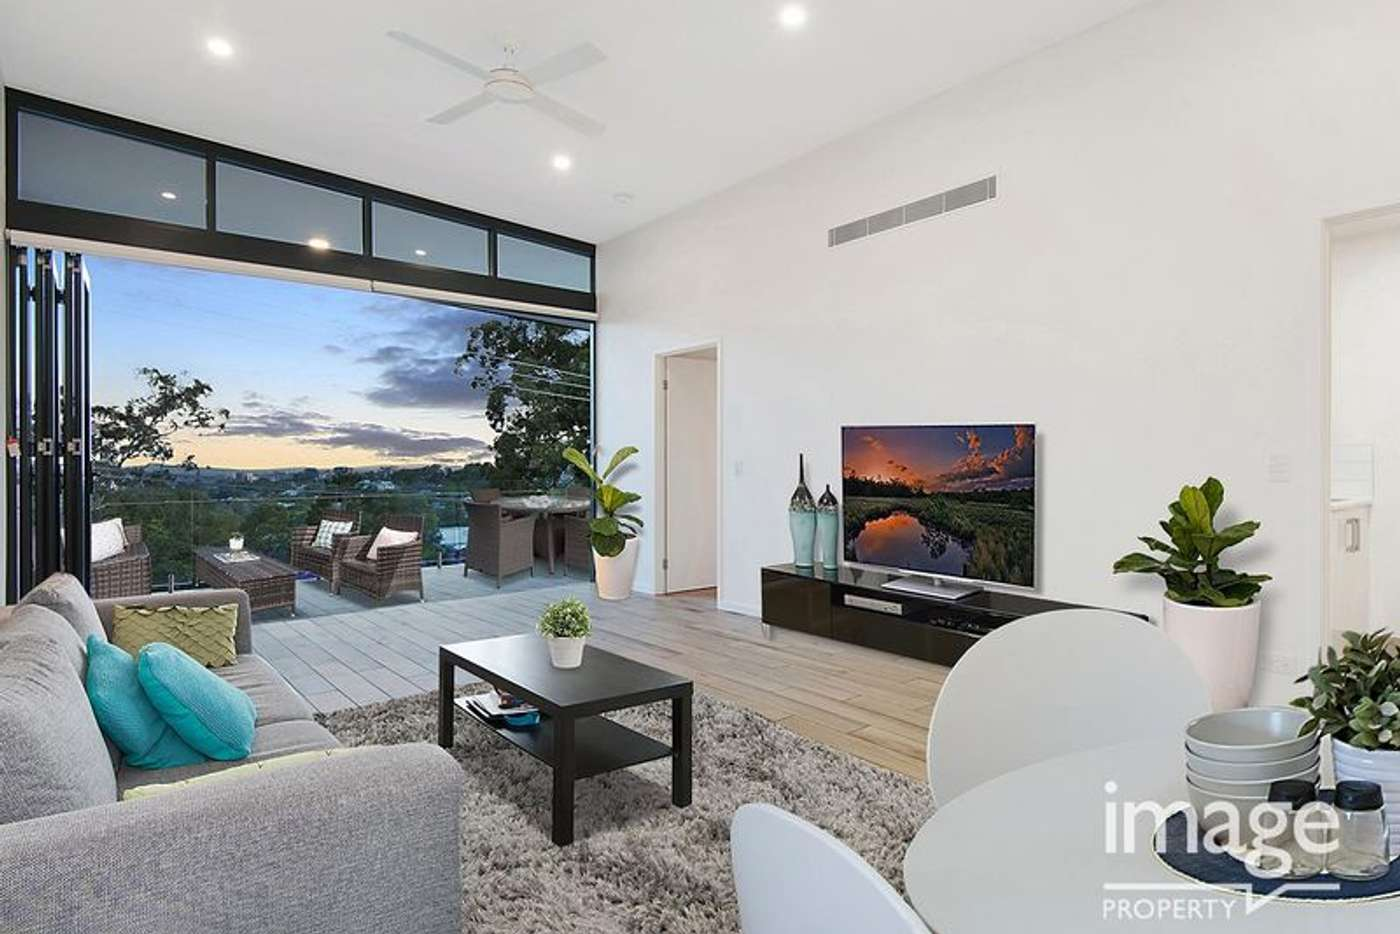 Main view of Homely house listing, 2301/23 Boundary Road, Bardon QLD 4065